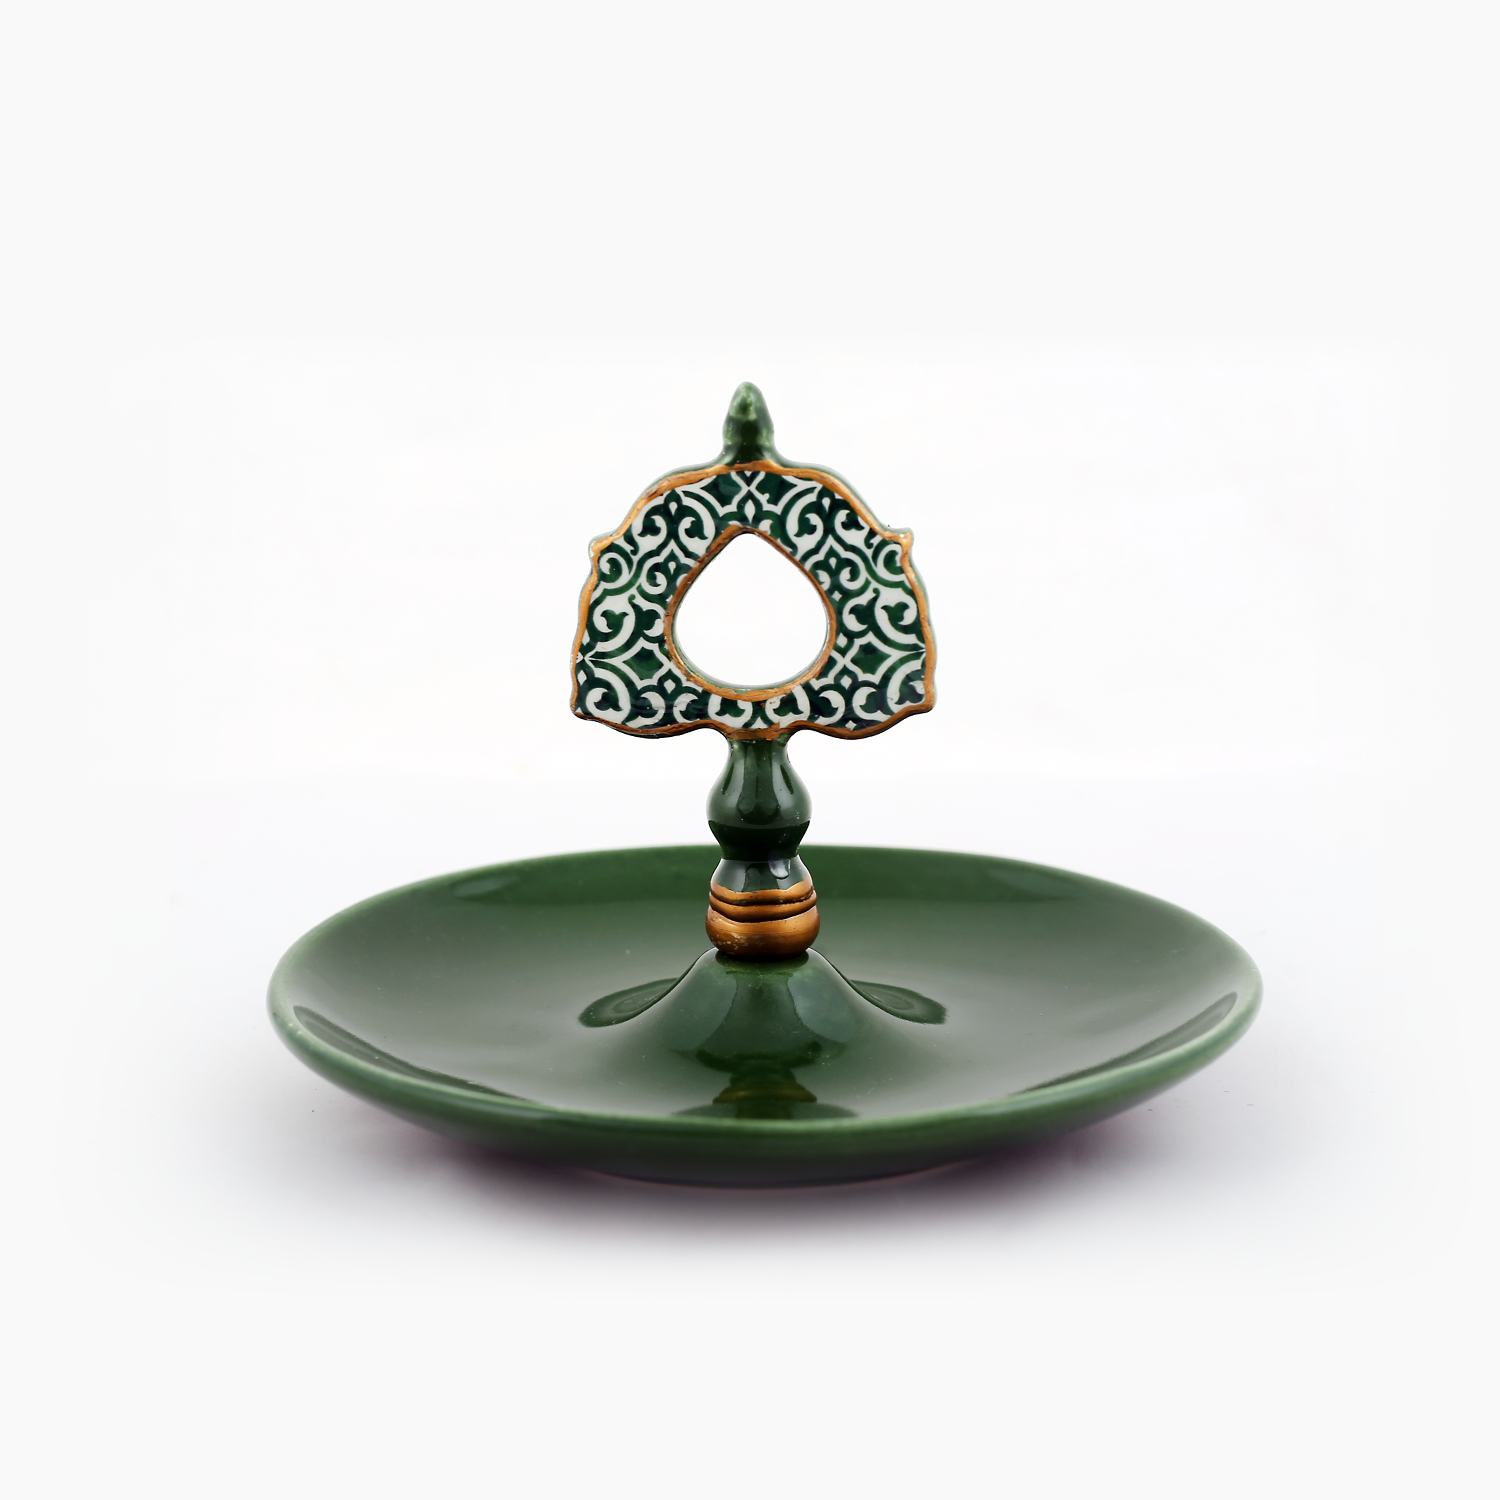 Decorative_Objects-16-1